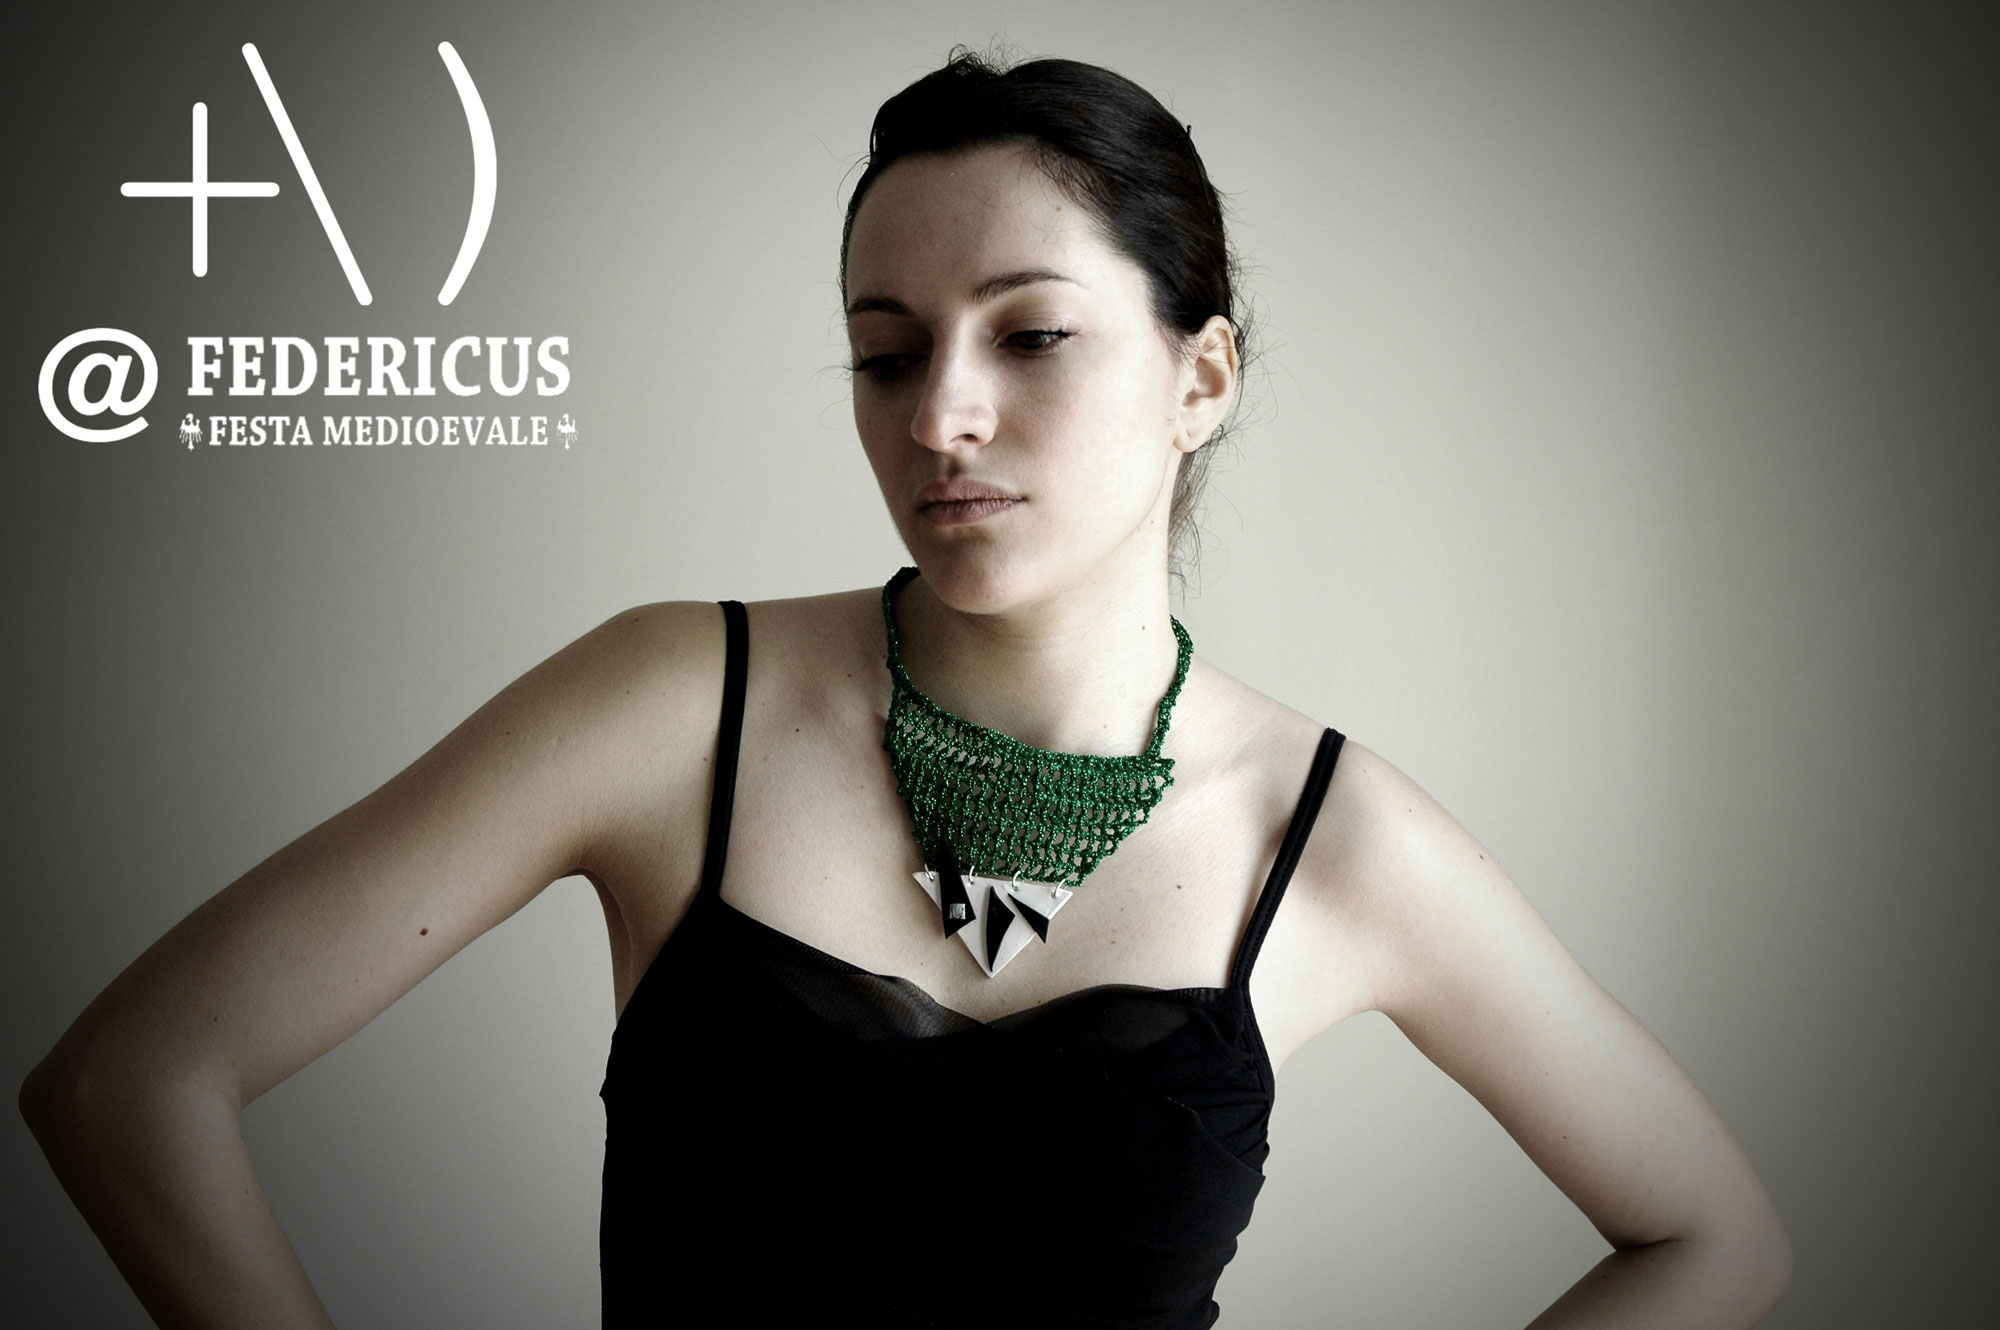 medieval inspired necklace federicus